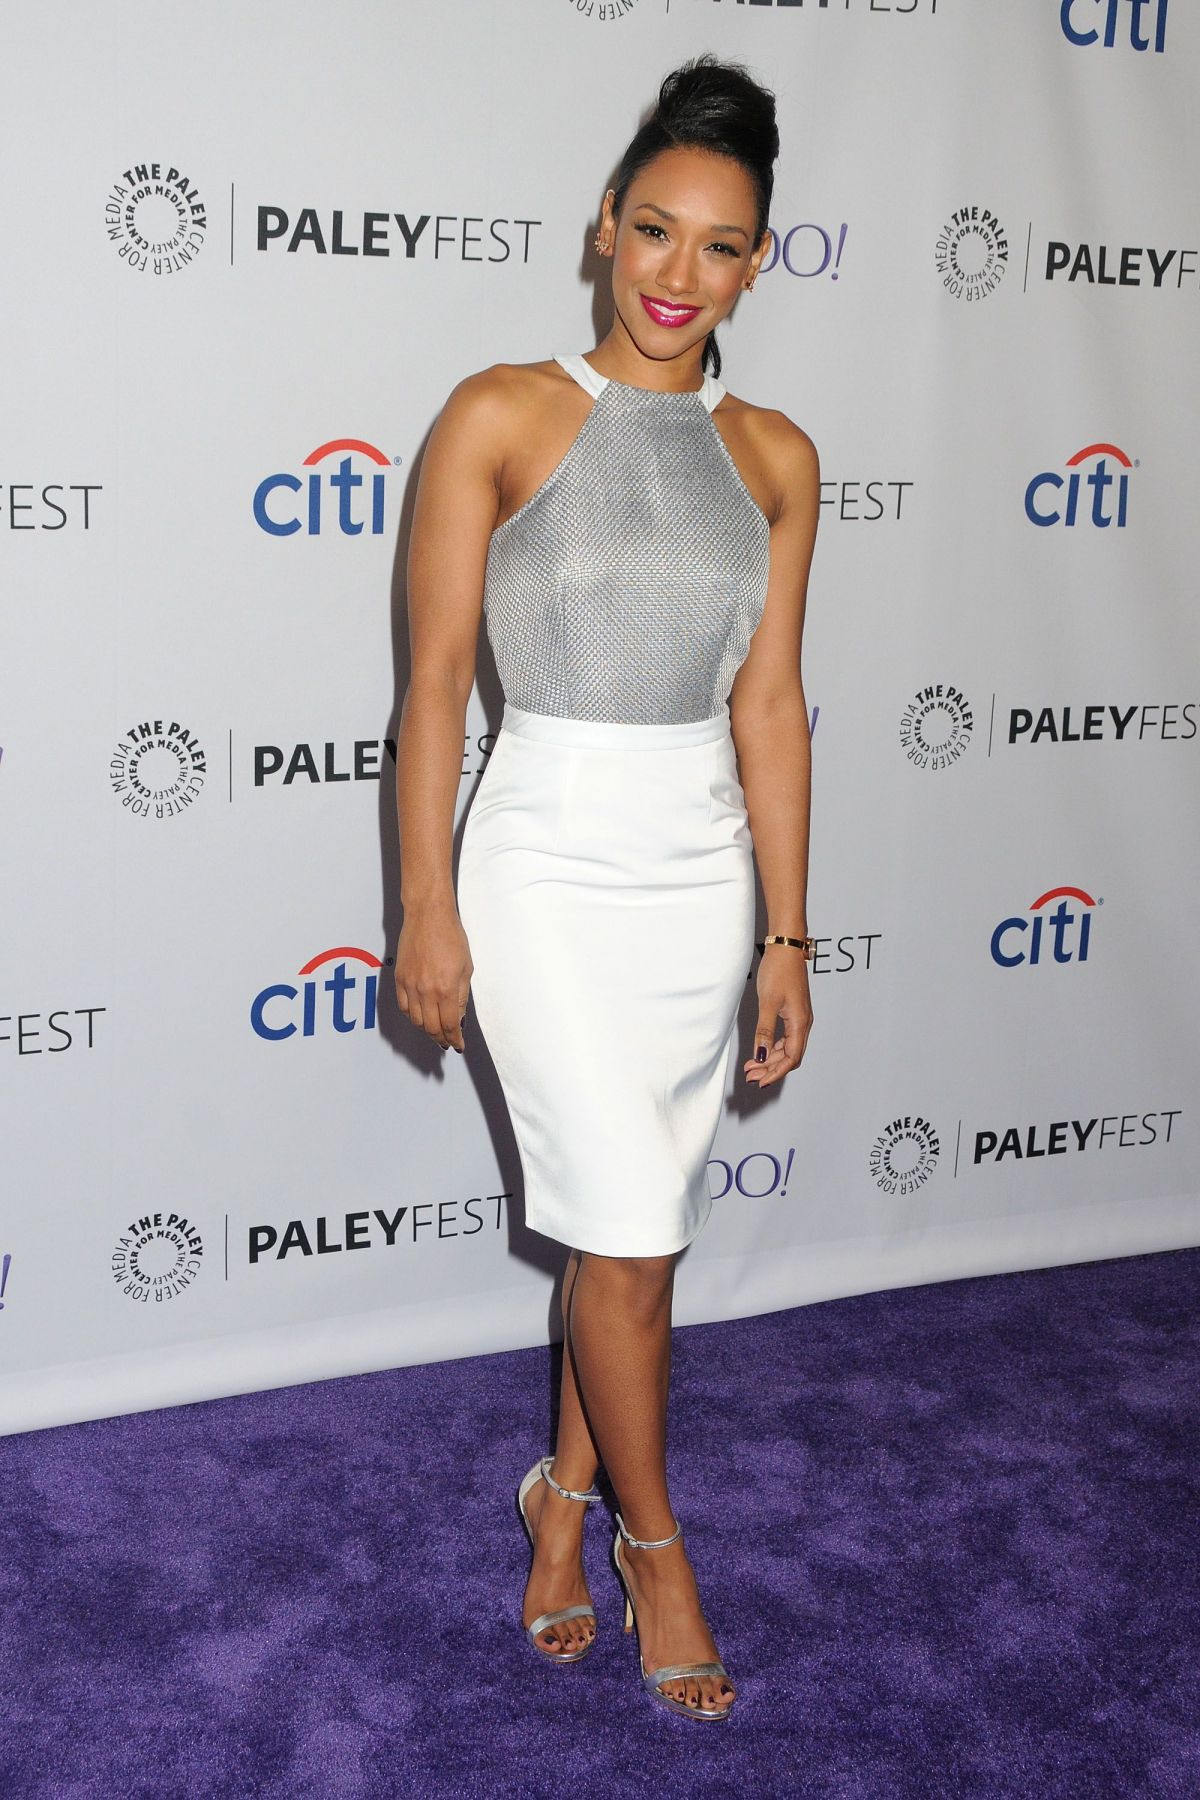 candice-patton-at-flash-event-for-paleyfest-in-hollywood_1.jpg